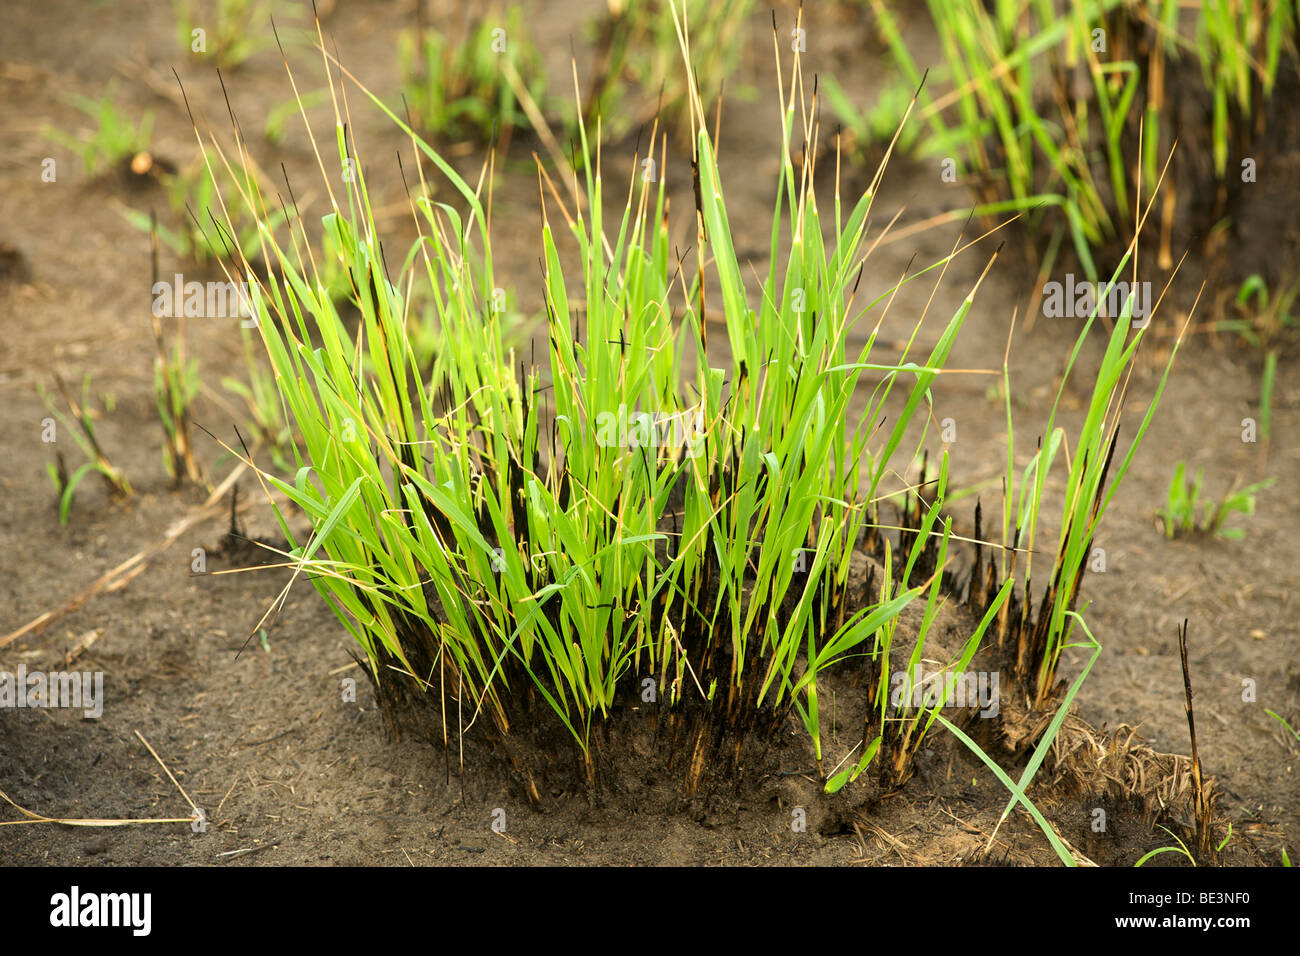 New grass shoots growing after a fire in Queen Elizabeth National Park in Uganda. - Stock Image